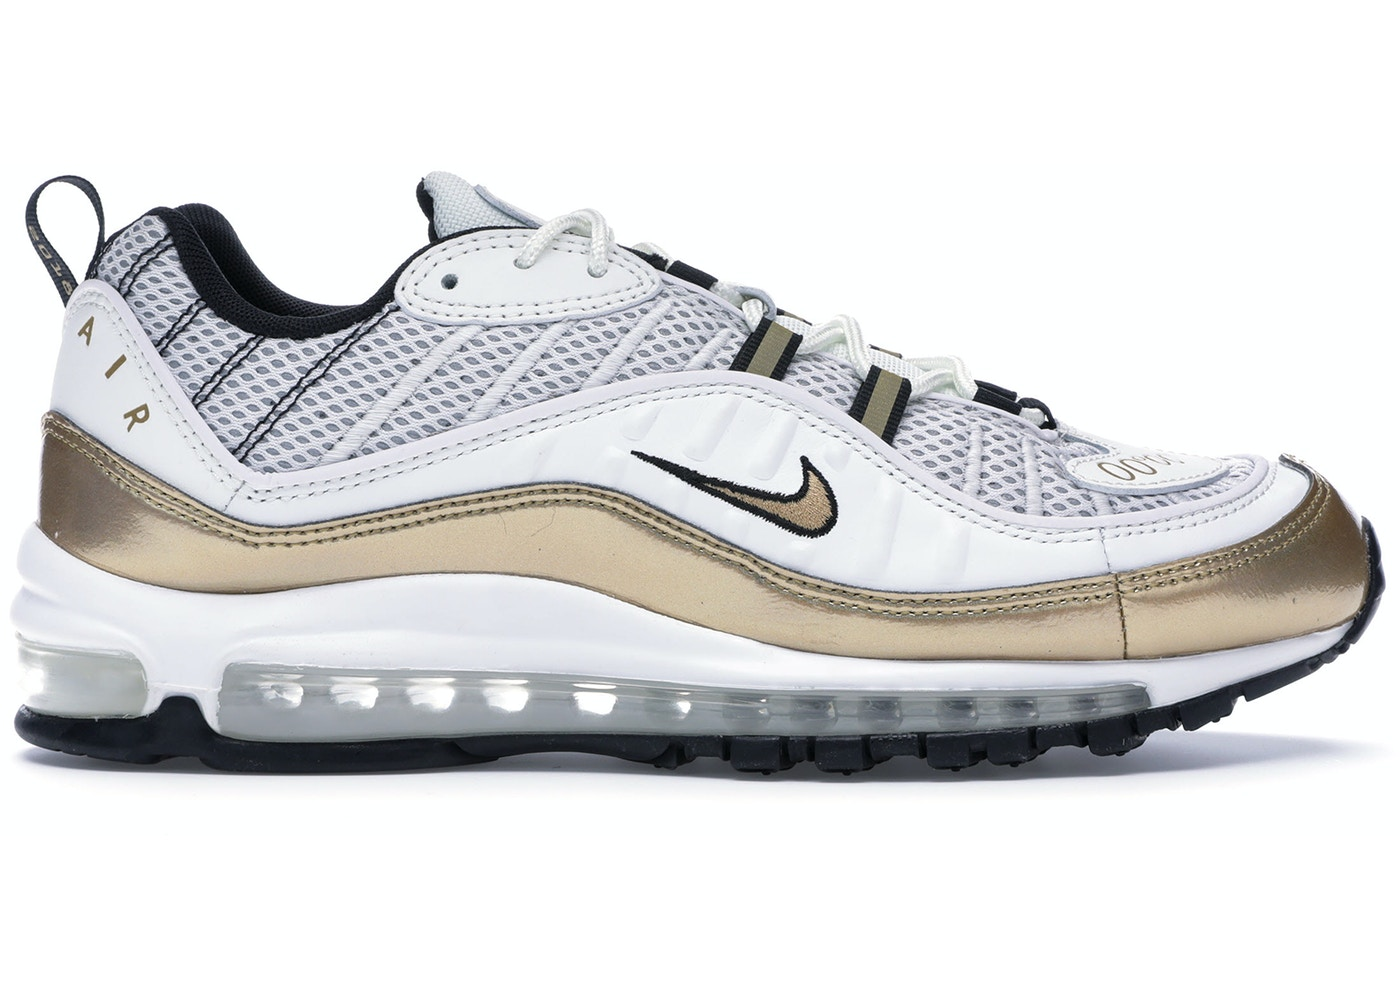 Air Max 98 Hyperlocal UK - AJ6302-100 f40426ea4